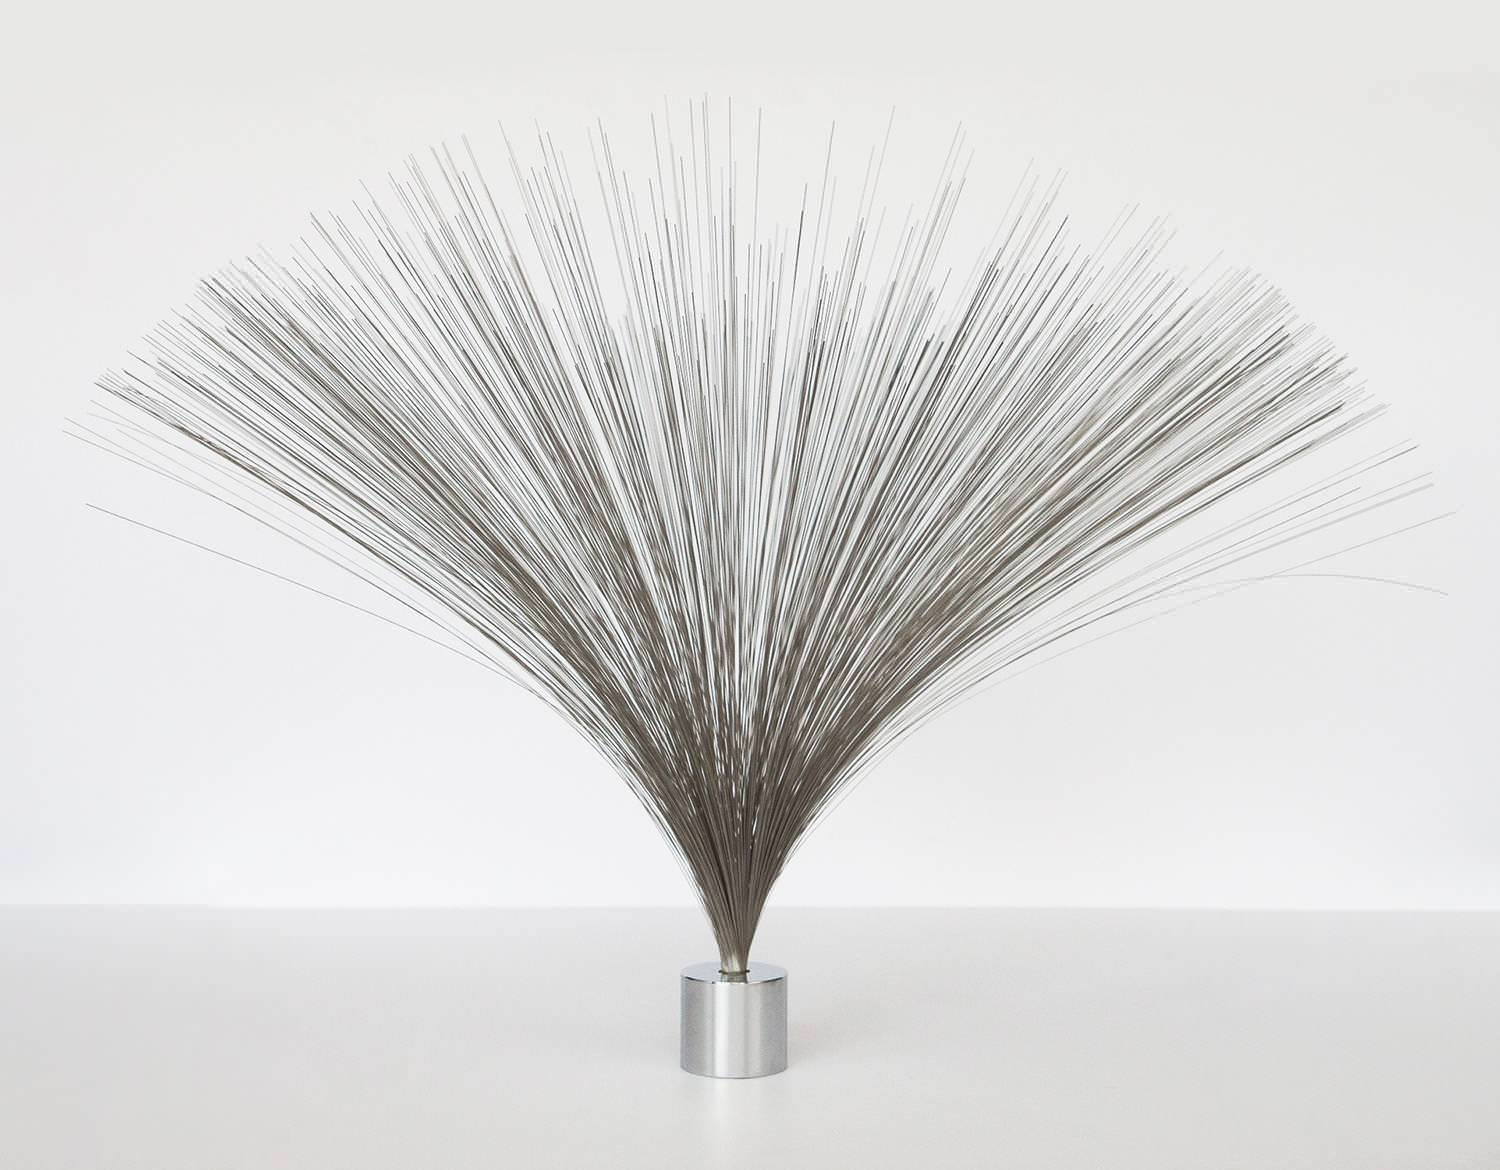 kinetic sculpture bertoia